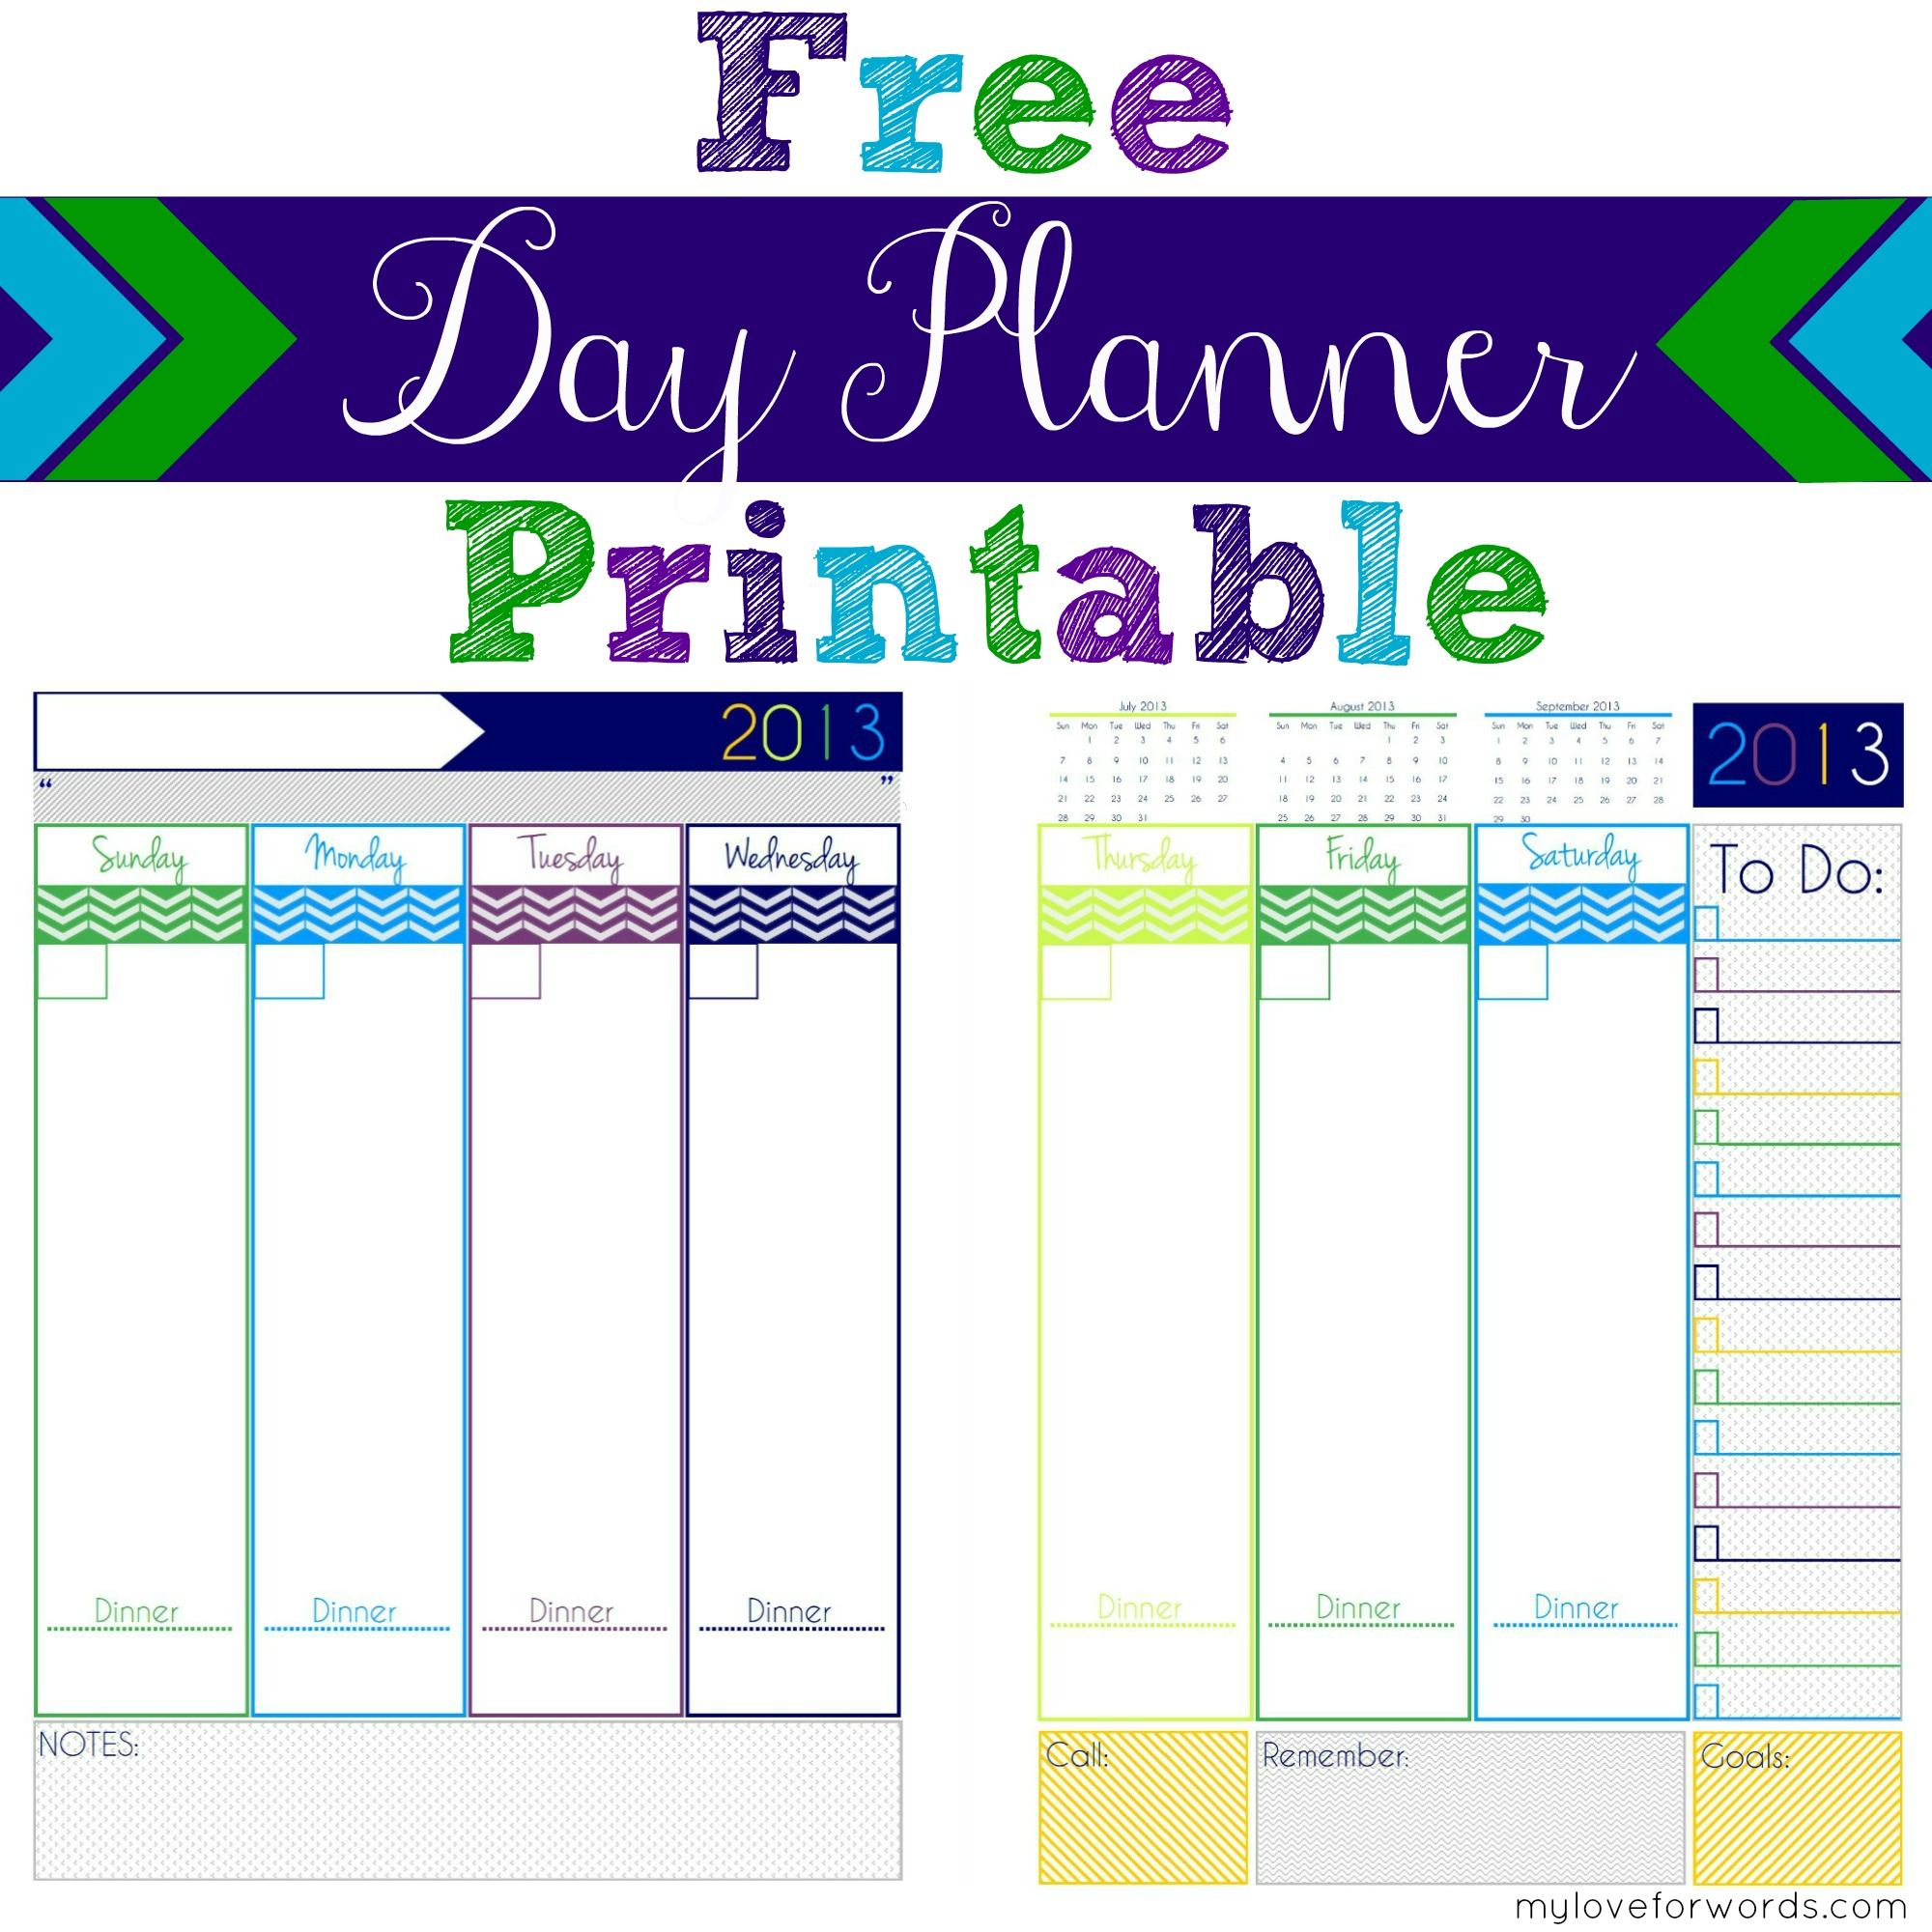 Daily Planner Printable - Free printable planner